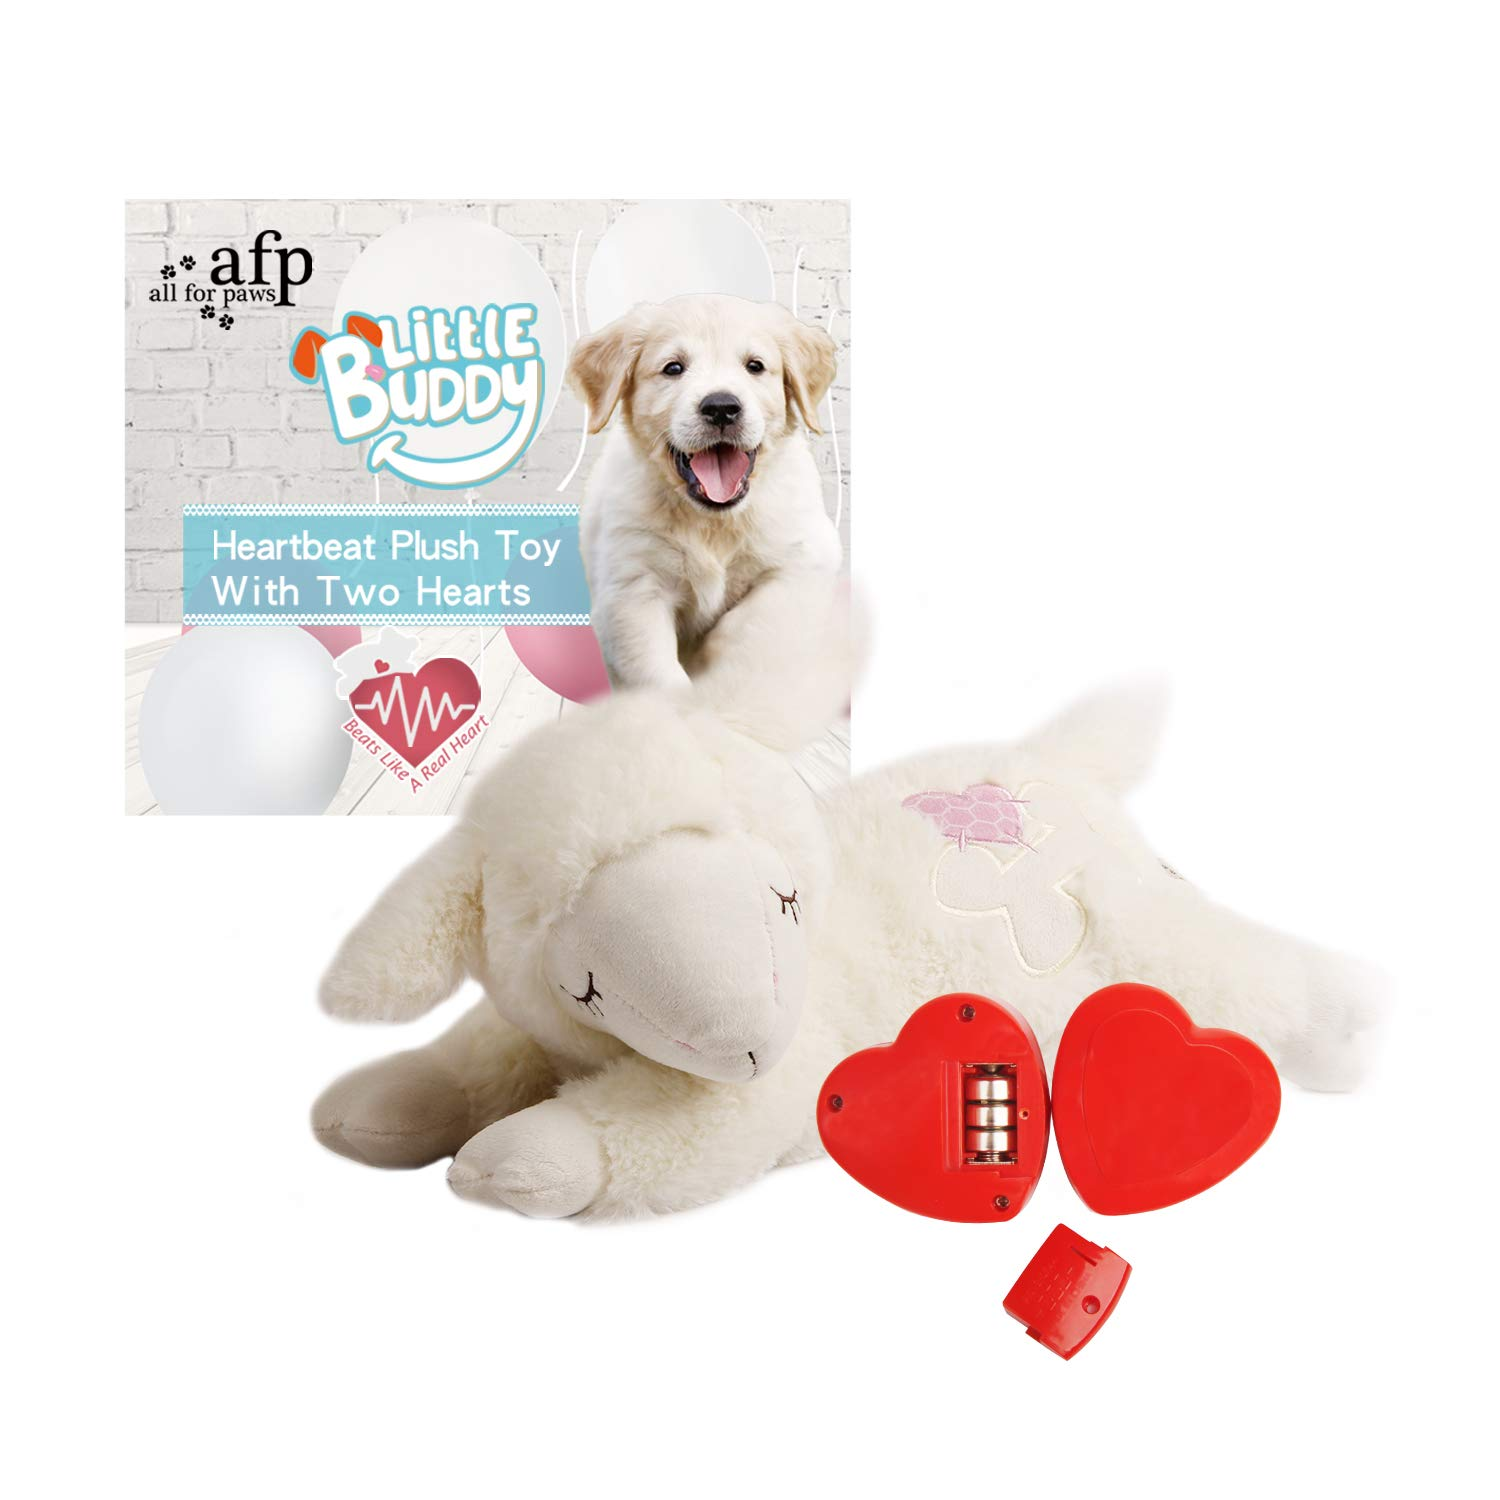 ALL FOR PAWS AFP Snuggle Sheep Pet Behavioral Aid Toy Plush Toy With TWO HEARTBEAT, White